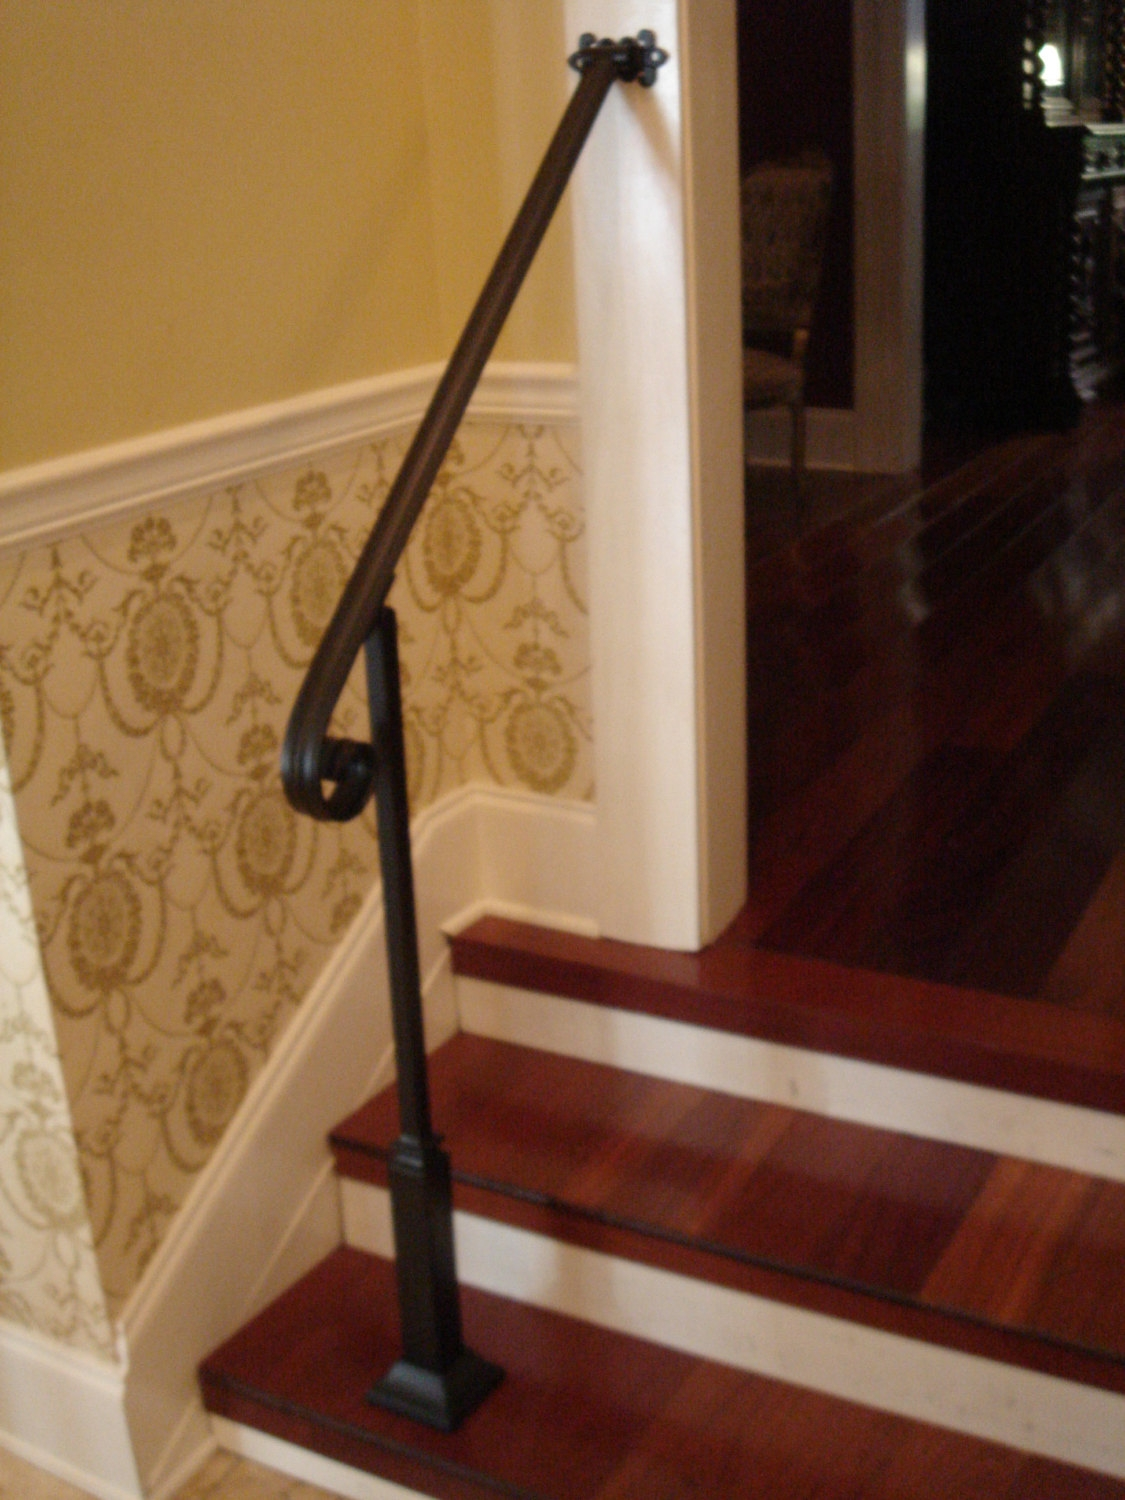 3 Ft Wrought Iron Stair Hand Rail Wall Post Mount Bracket   Wrought Iron Hand Railing For Steps